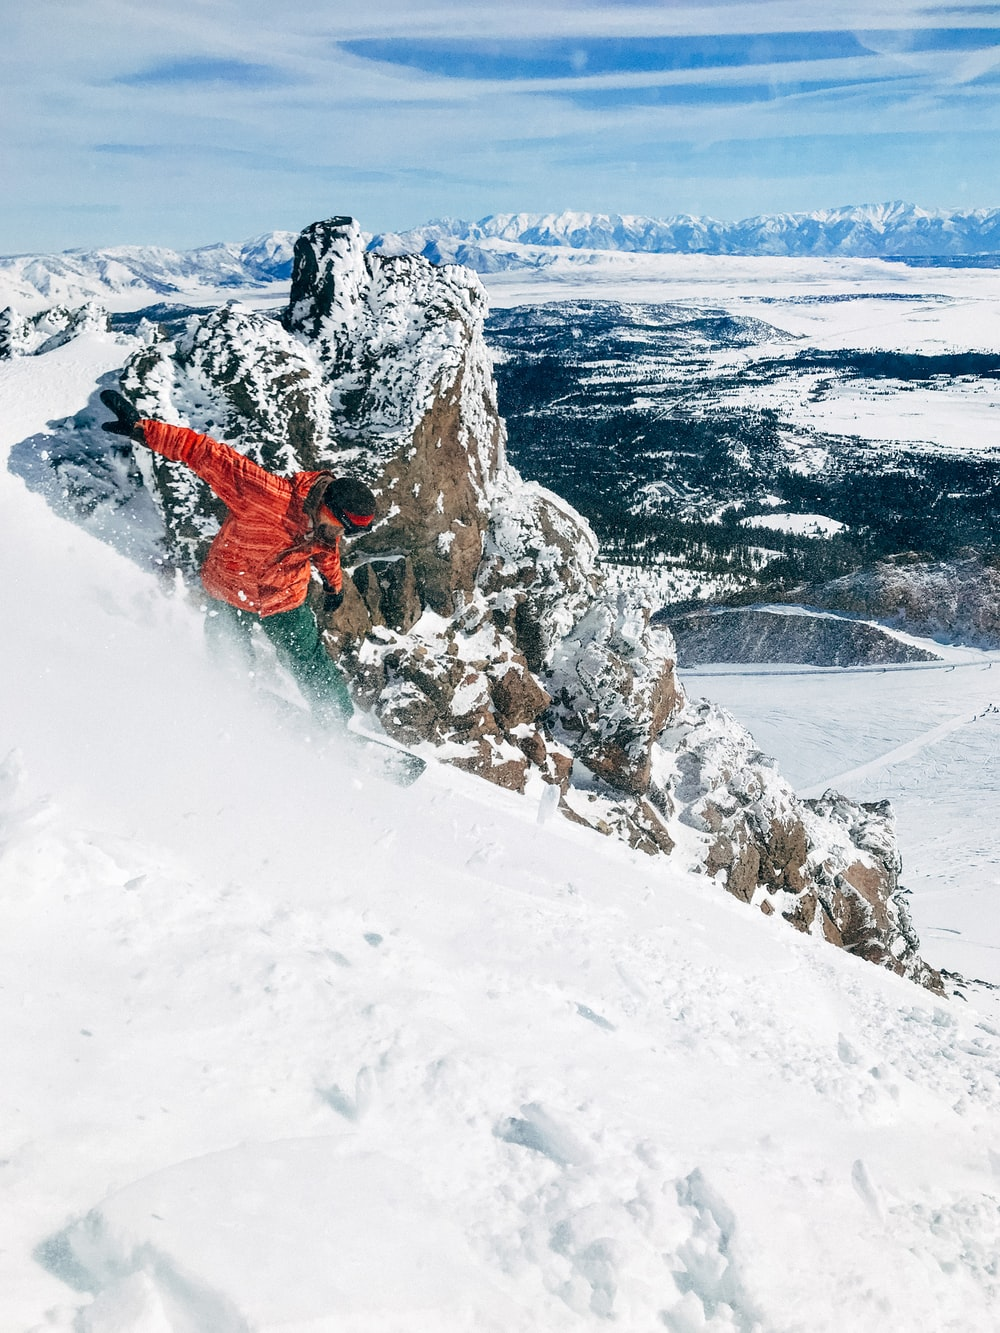 man snowboarding on mountain covered with ice